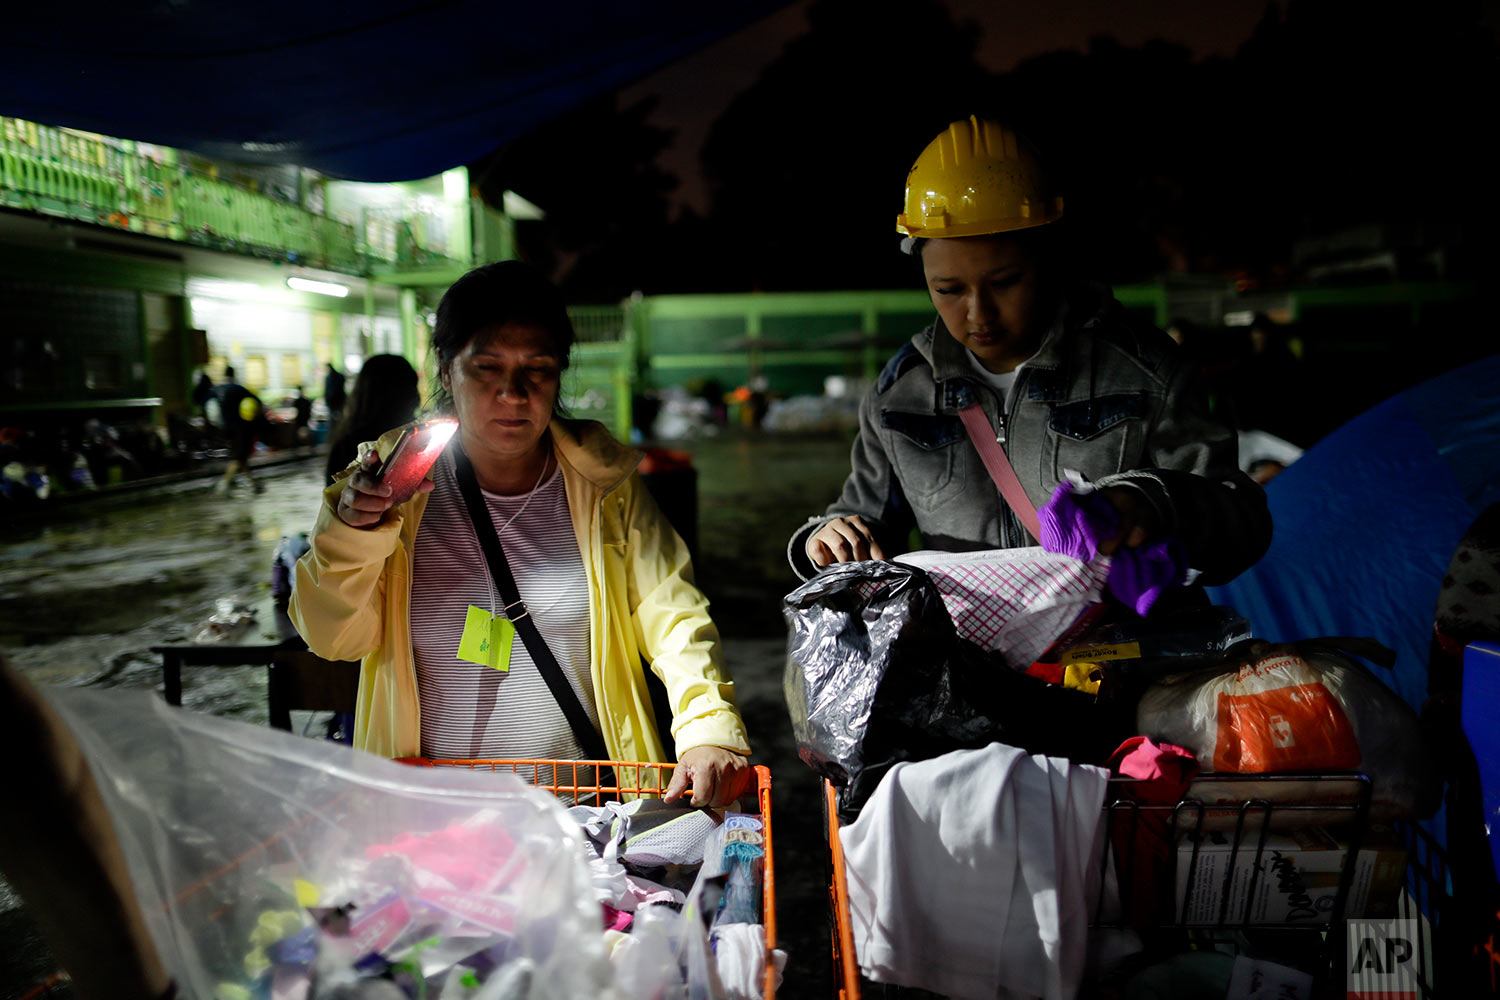 Volunteers sort donated clothes at the Francisco Kino school, which was turned into a temporary shelter for residents evacuated from the large apartment complex in the Tlalpan neighborhood of Mexico City, Monday, Sept. 25, 2017. (AP Photo/Natacha Pisarenko)